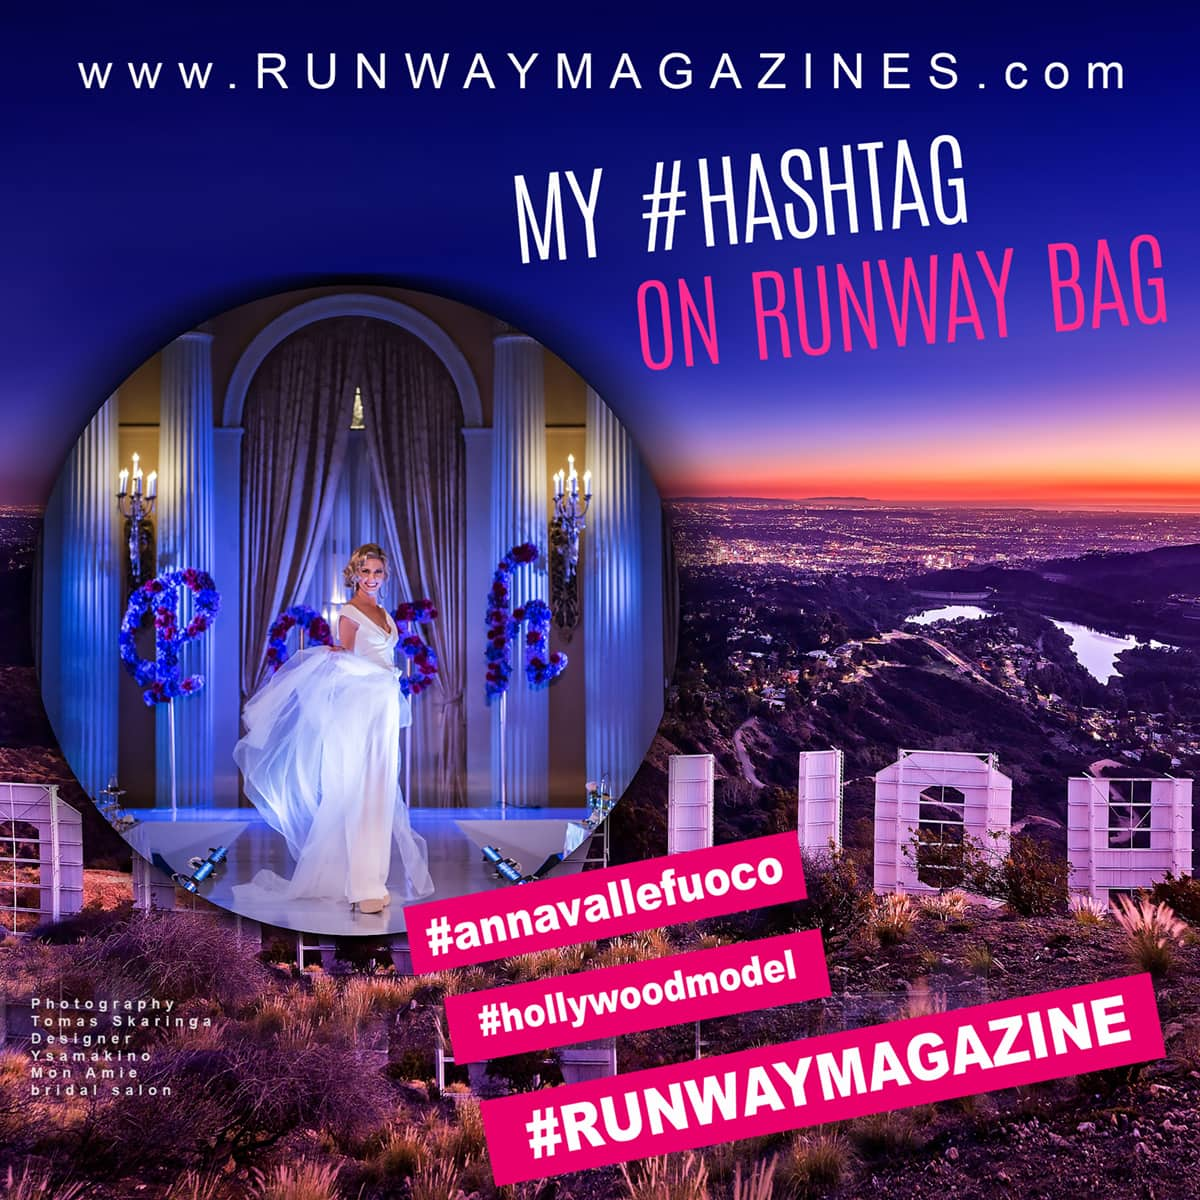 Story of Fashion Model Anna Vallefuoco - My Runway Bag by RUNWAY MAGAZINE